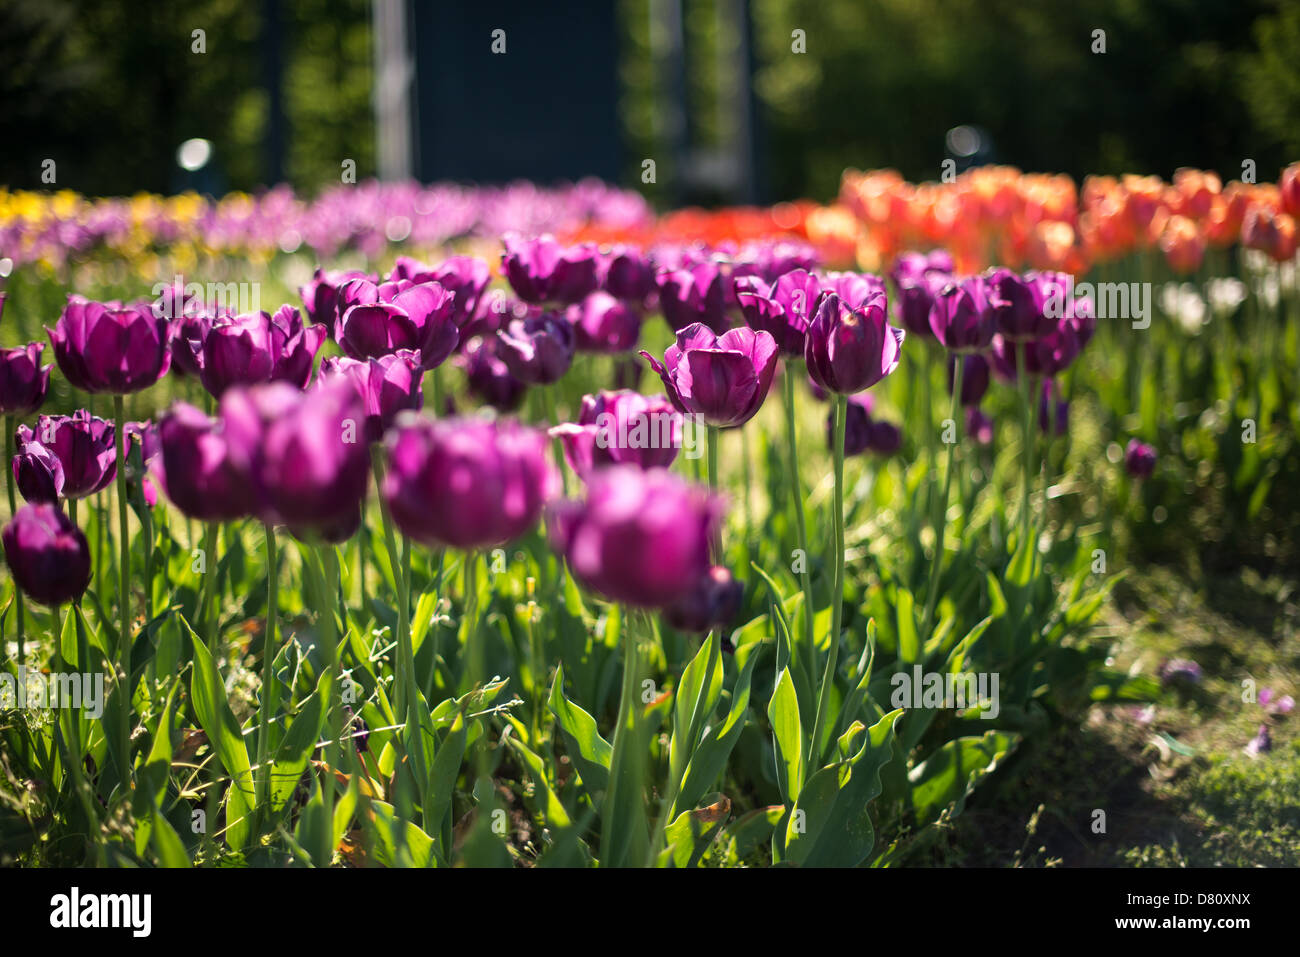 Spring tulips in bloom at the Netherlands Carillon next to Arlington National Cemetery and the Iwo Jima Memorial. Stock Photo